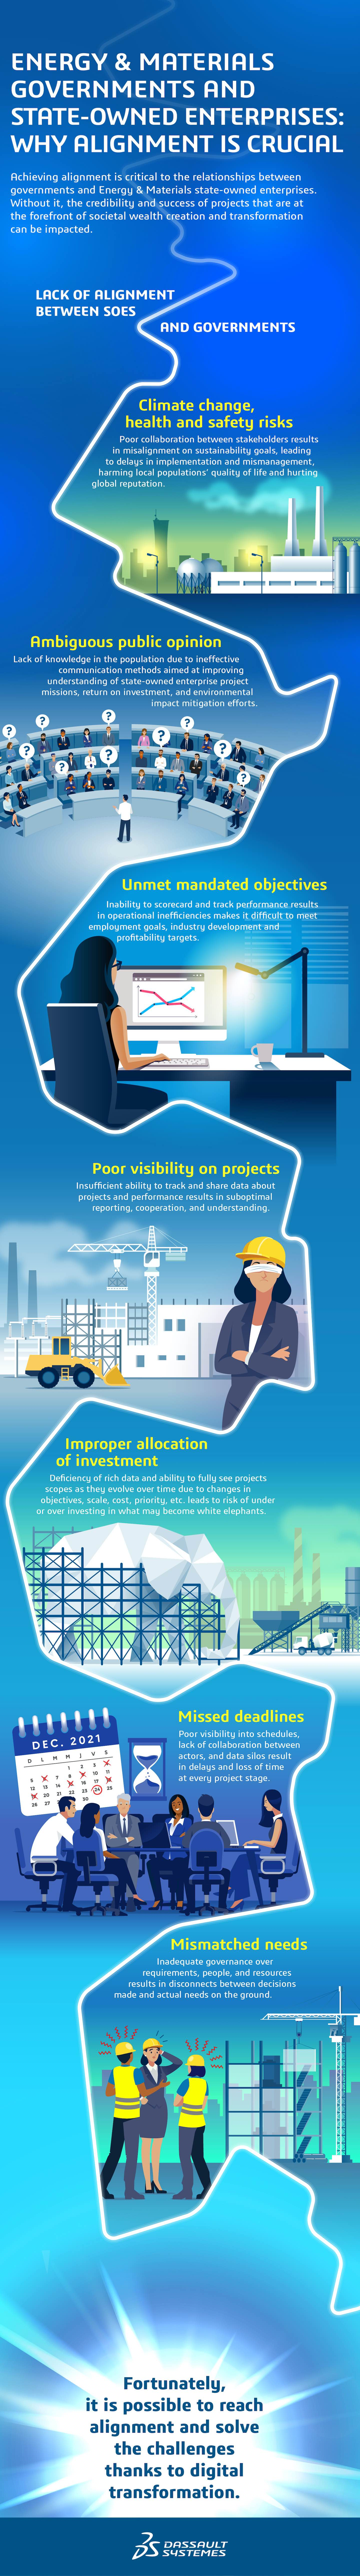 Transforming to drive economic recovery and sustainability > Image > Dassault Systèmes®